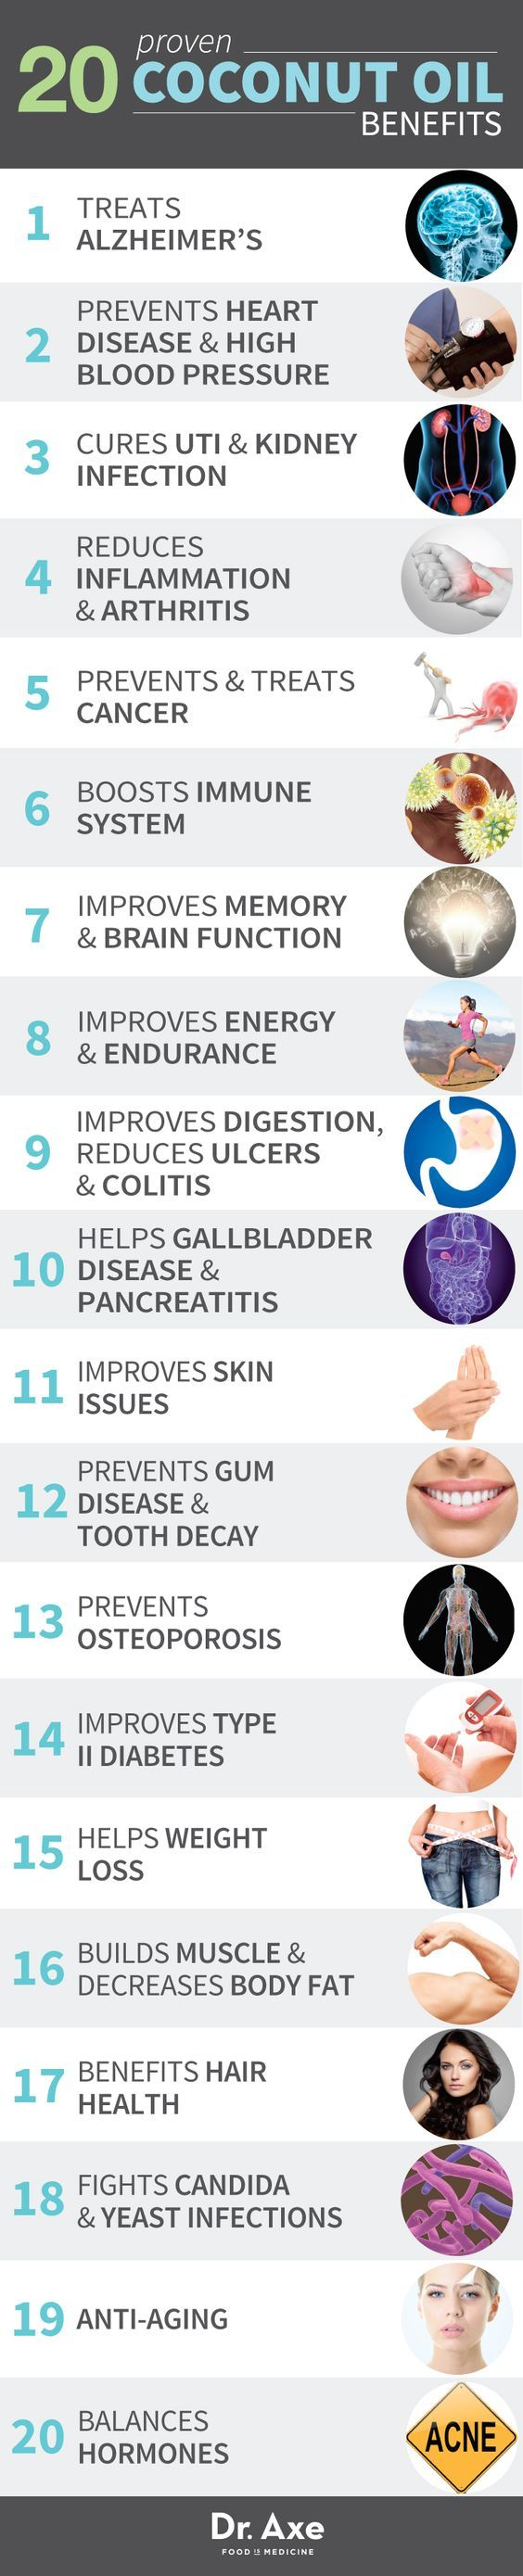 These 10 essential oil hacks that every woman should know is AMAZING! I'm so happy I found this! I've started using Jojoba Oil on my skin and it LOOKS GREAT already! Definitely pinning for later!